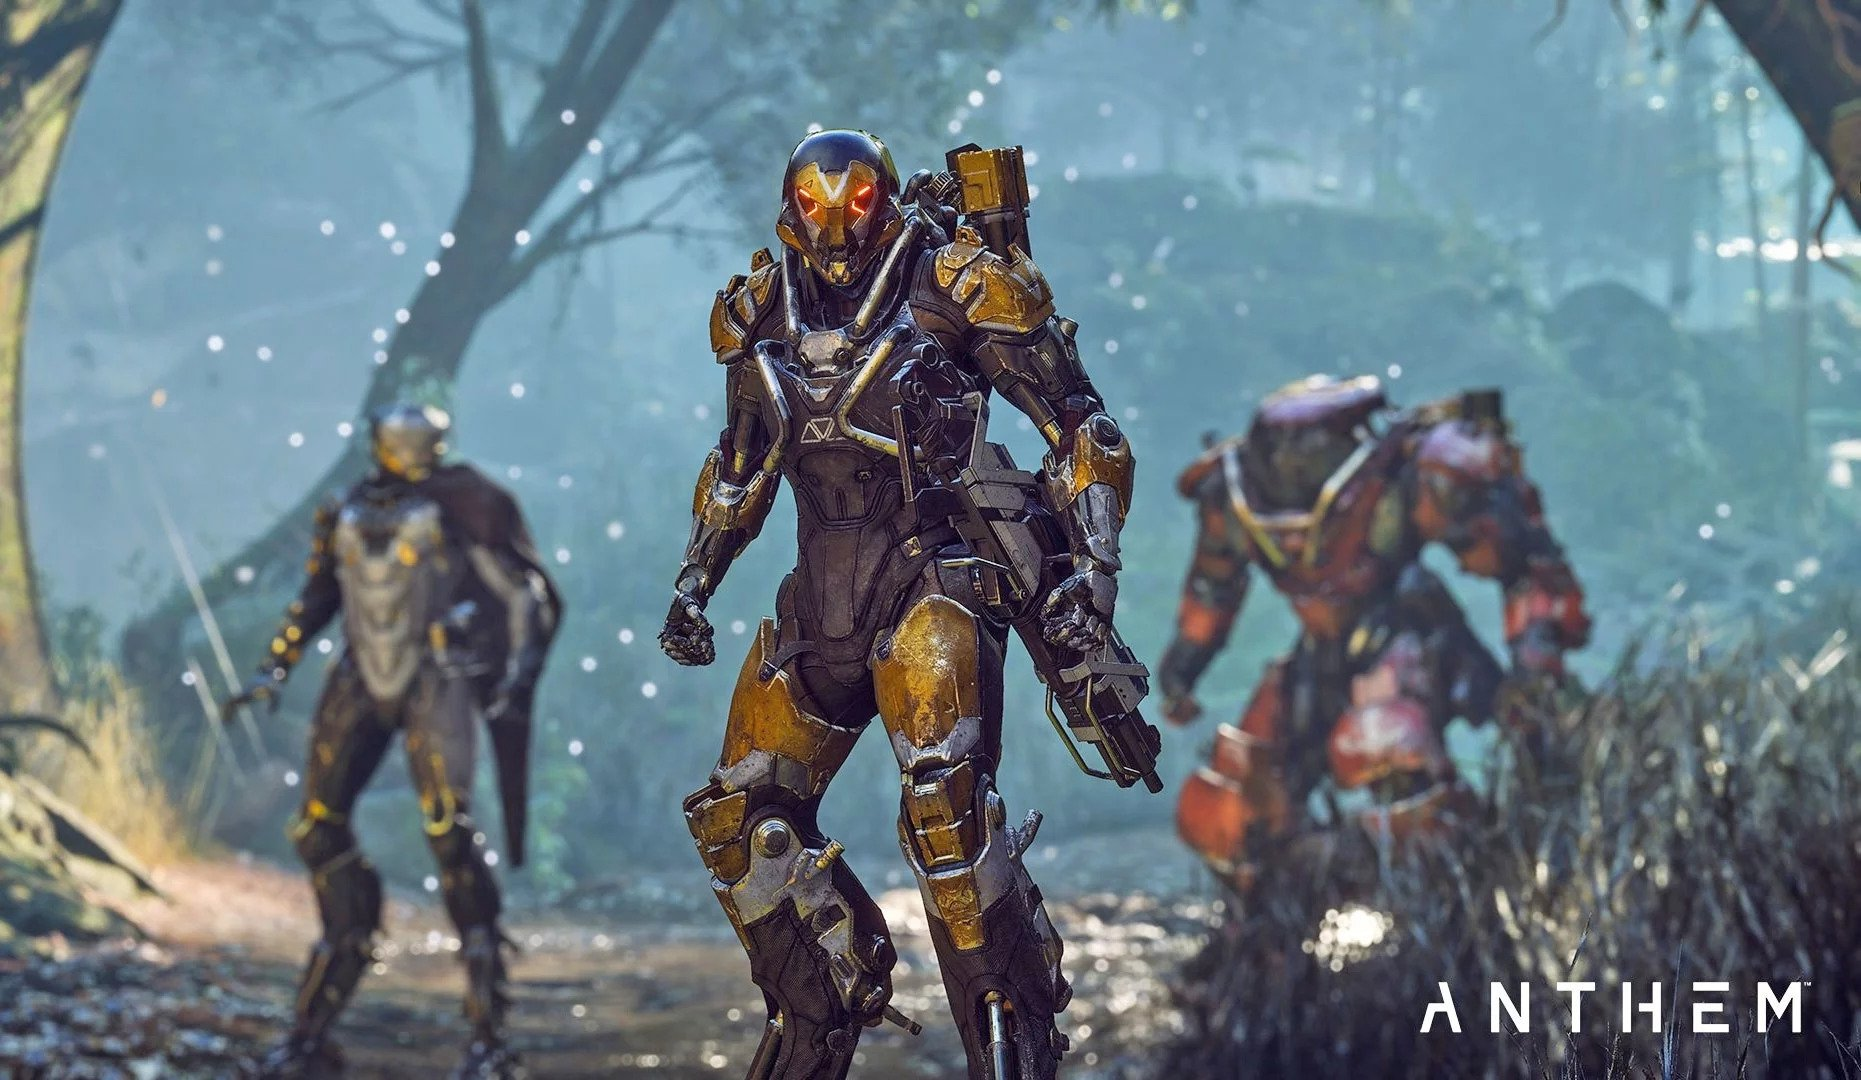 Anthem - are you excited about it?